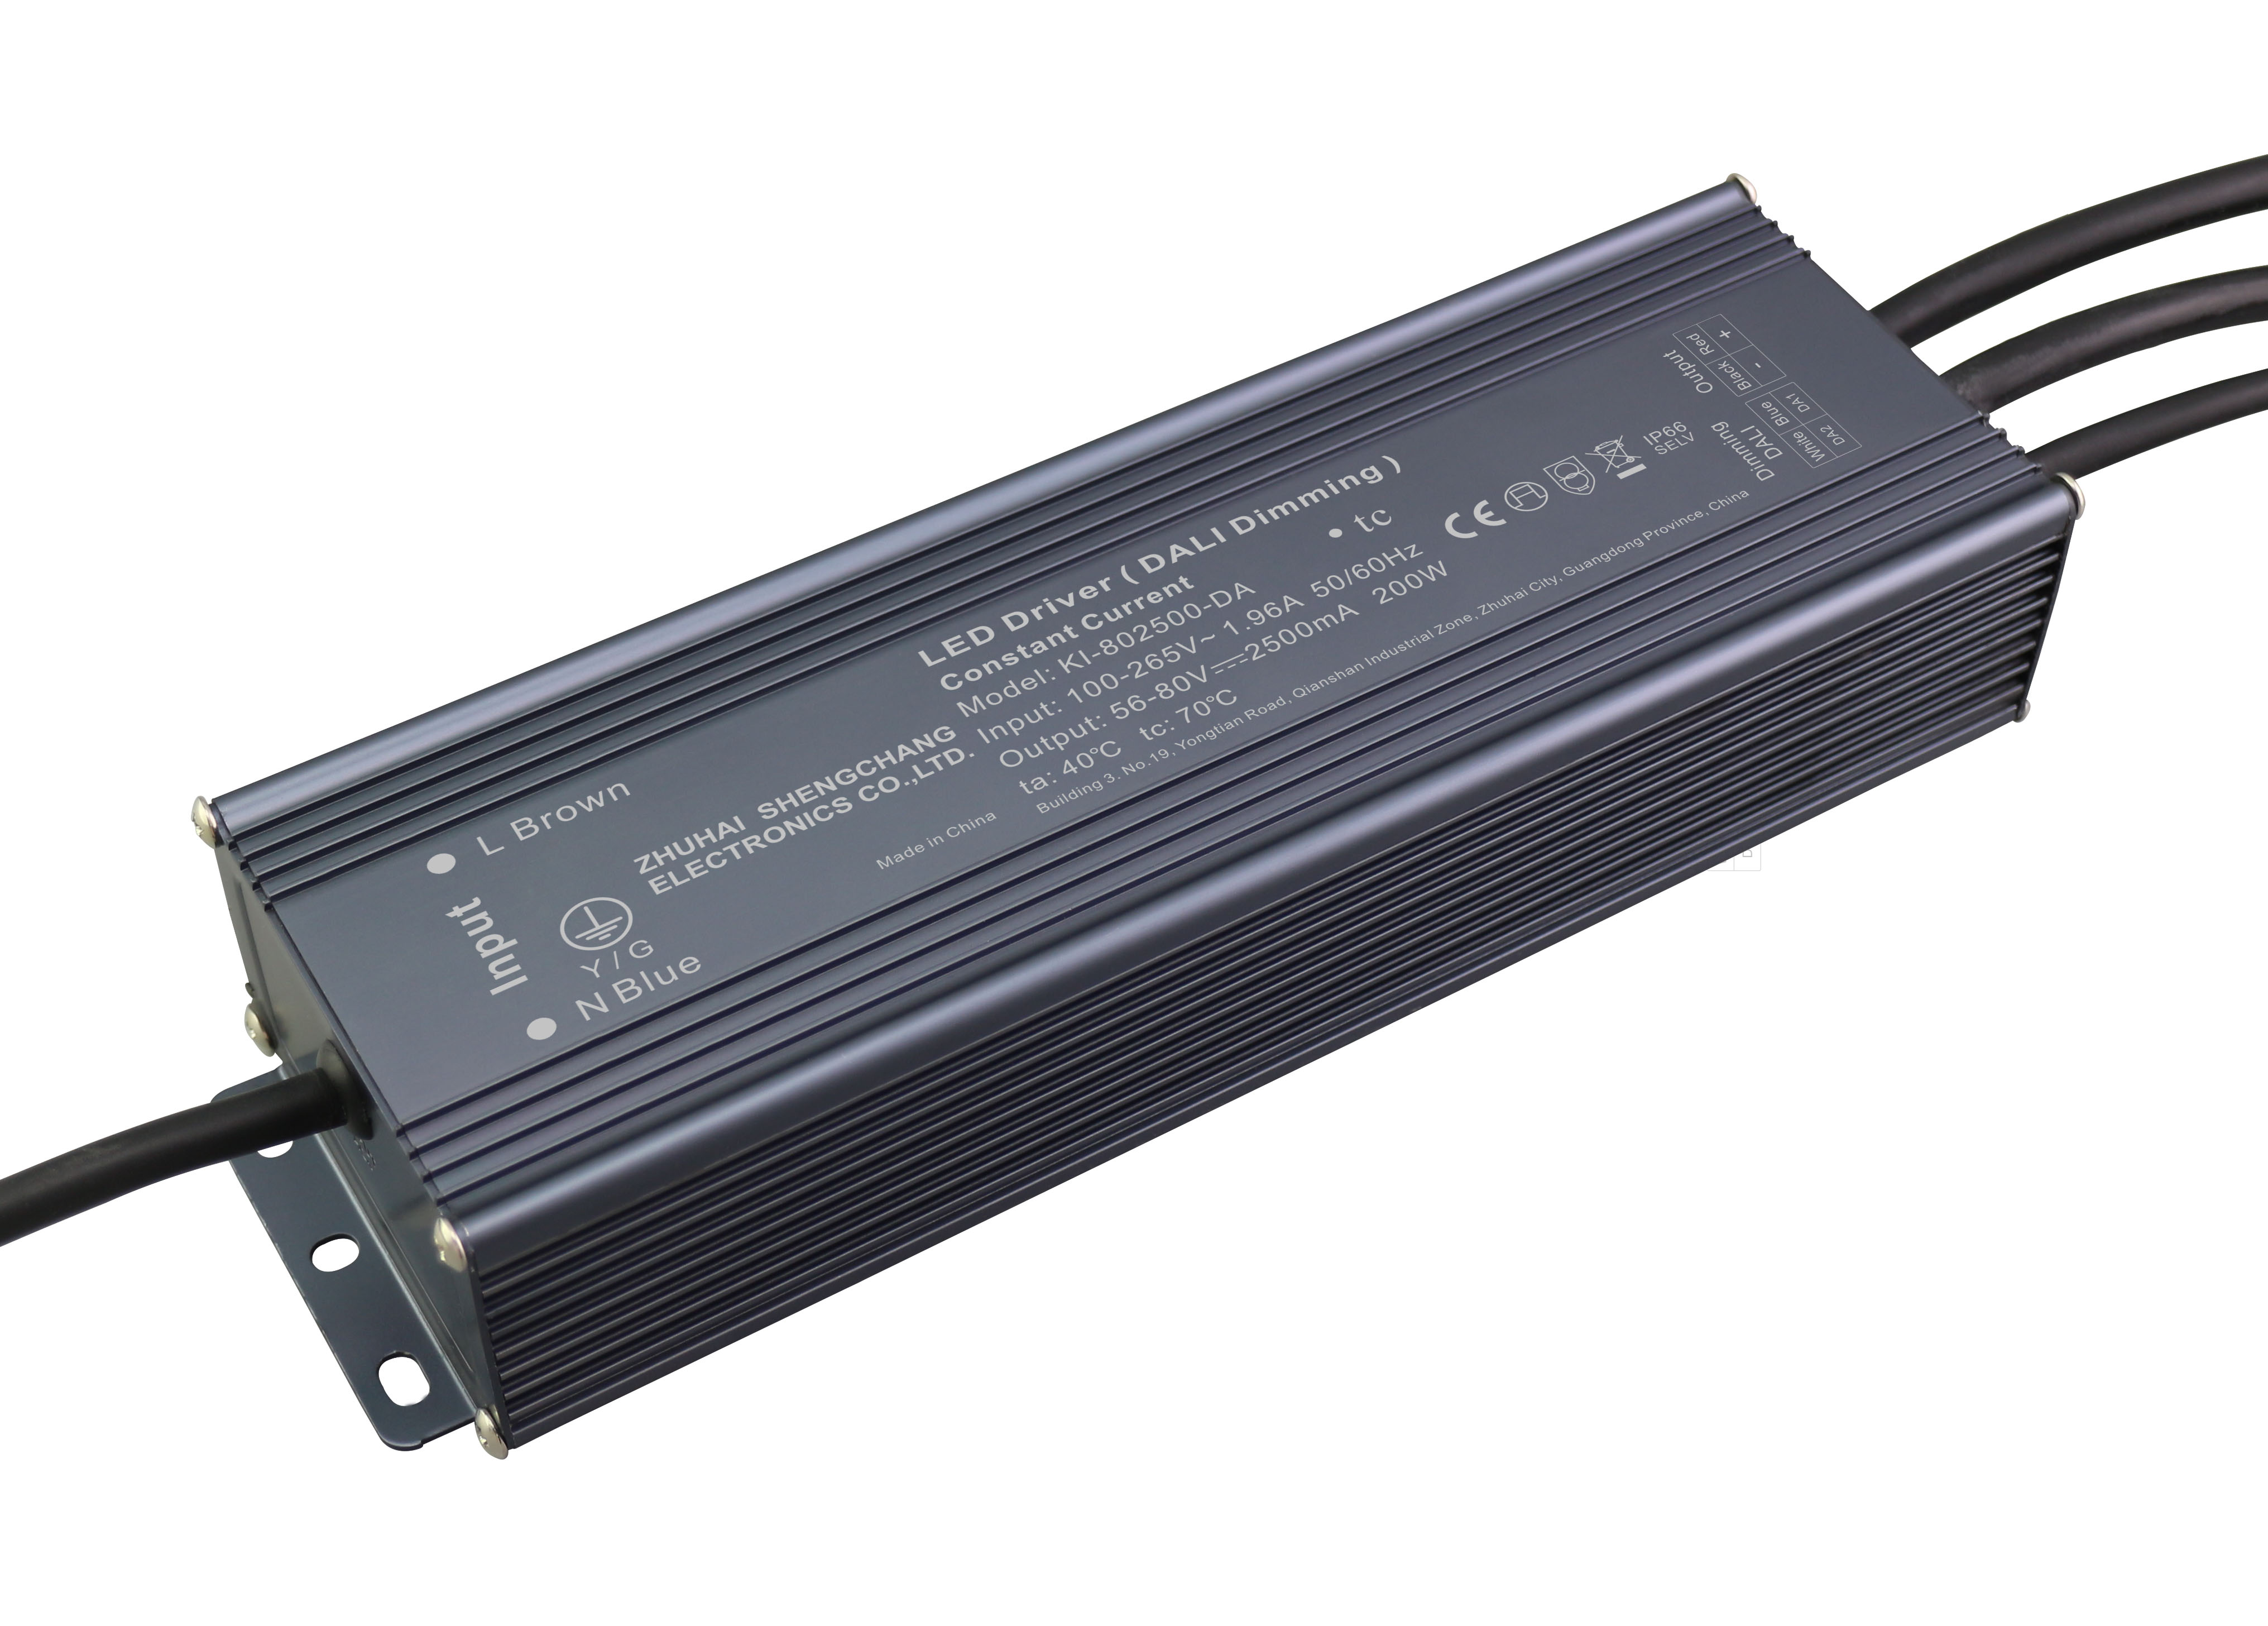 200W DALI constant current dimmable LED driver